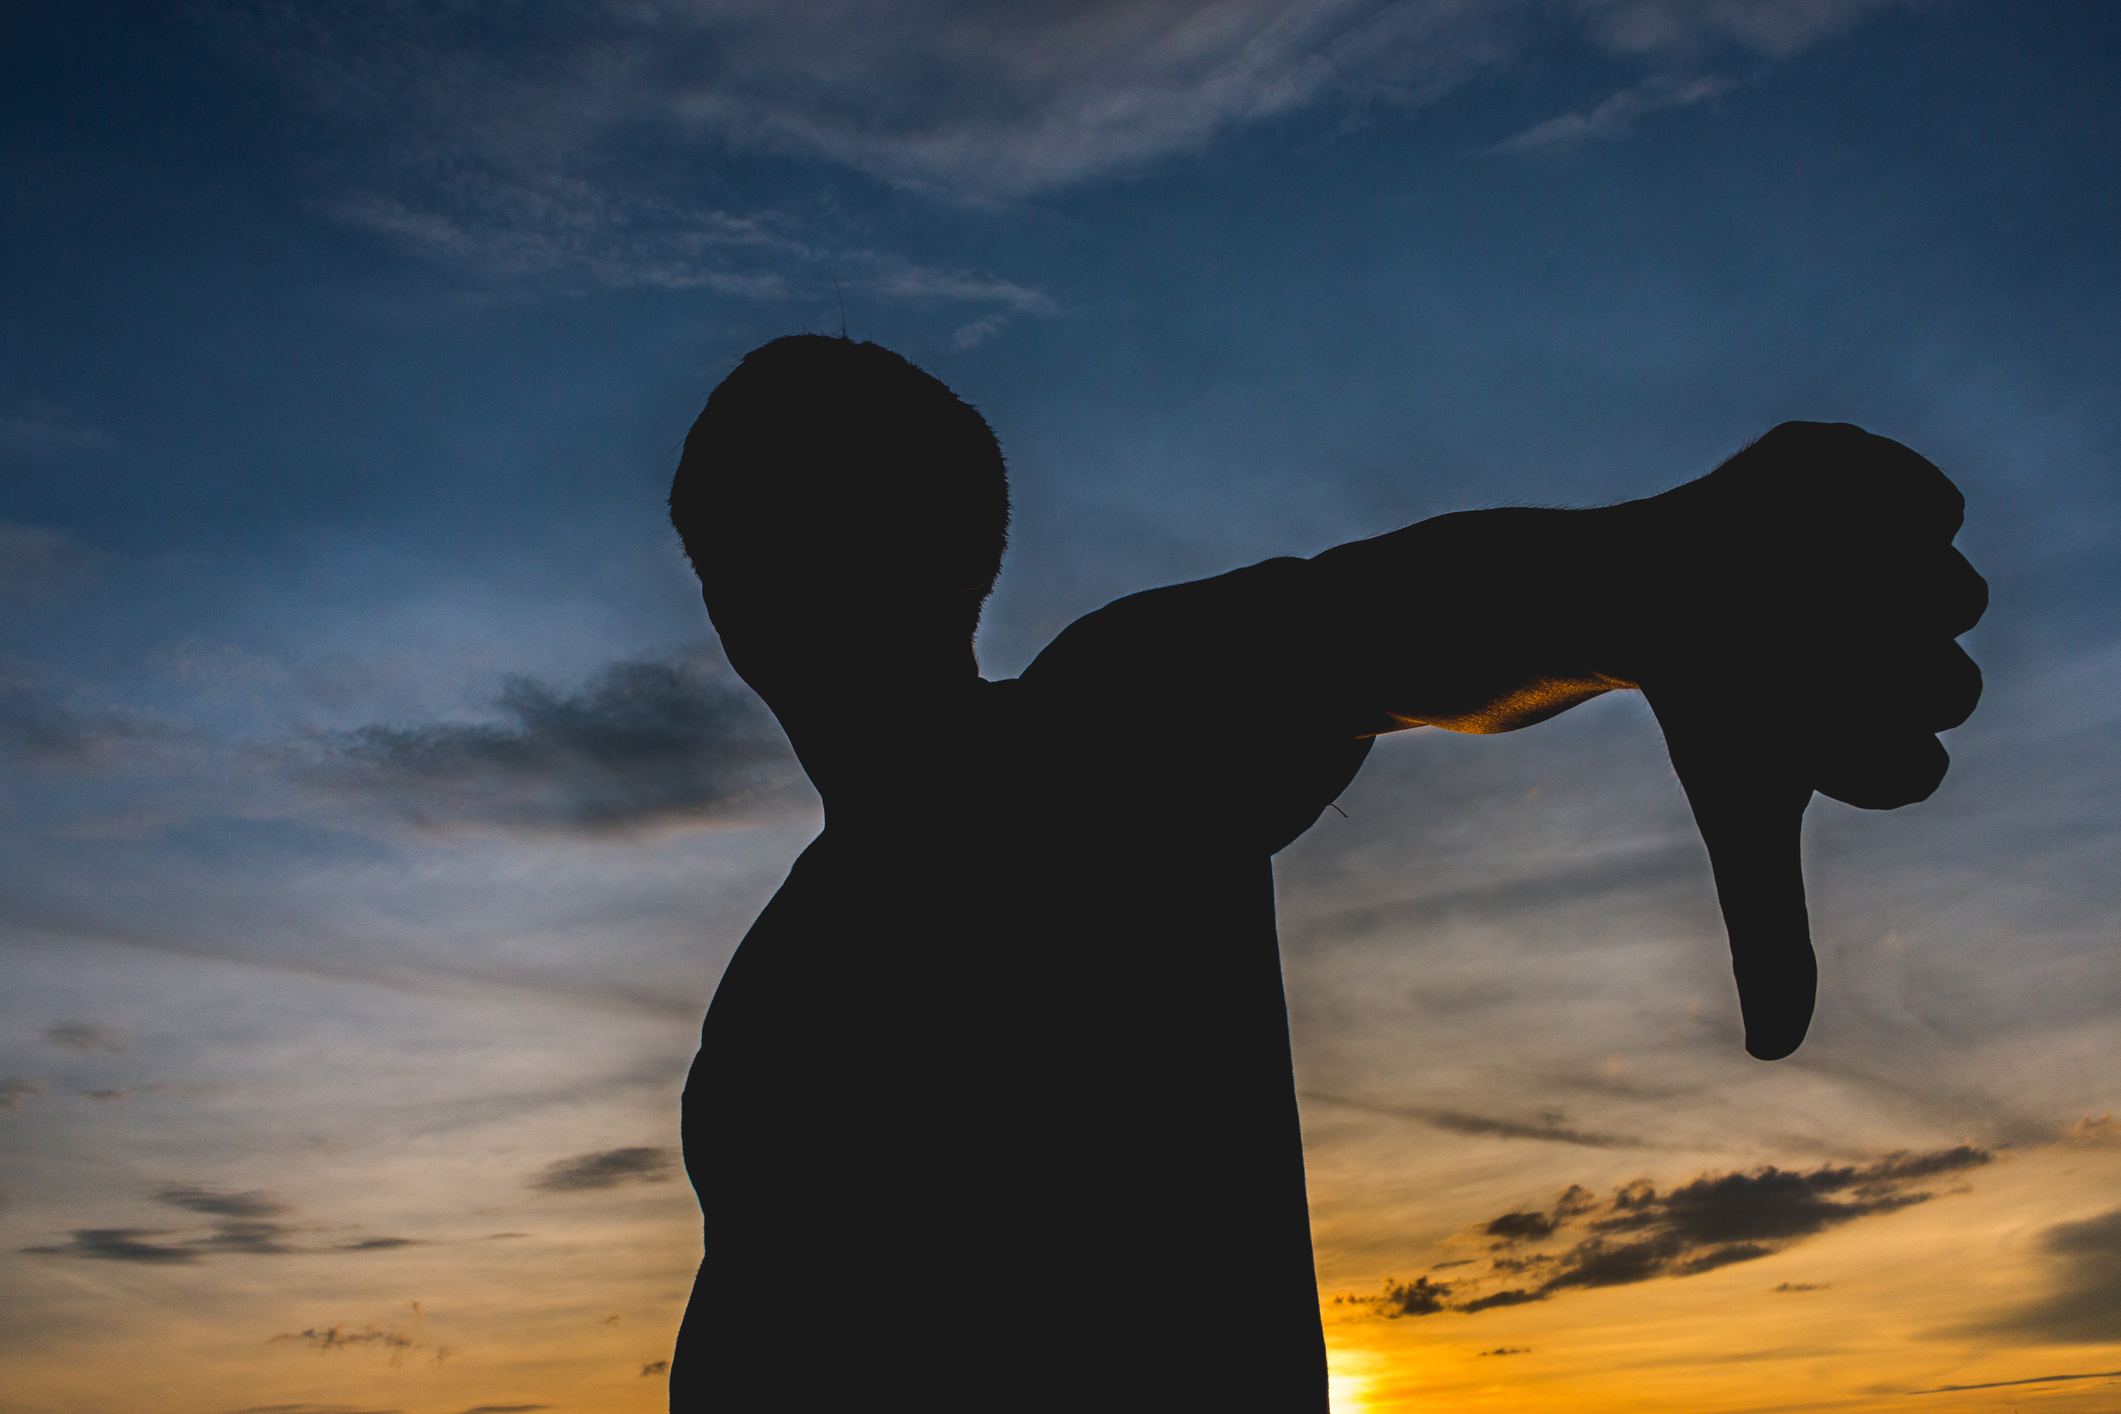 Silhouette Man Gesturing Thumbs Down Against Sky During Sunset